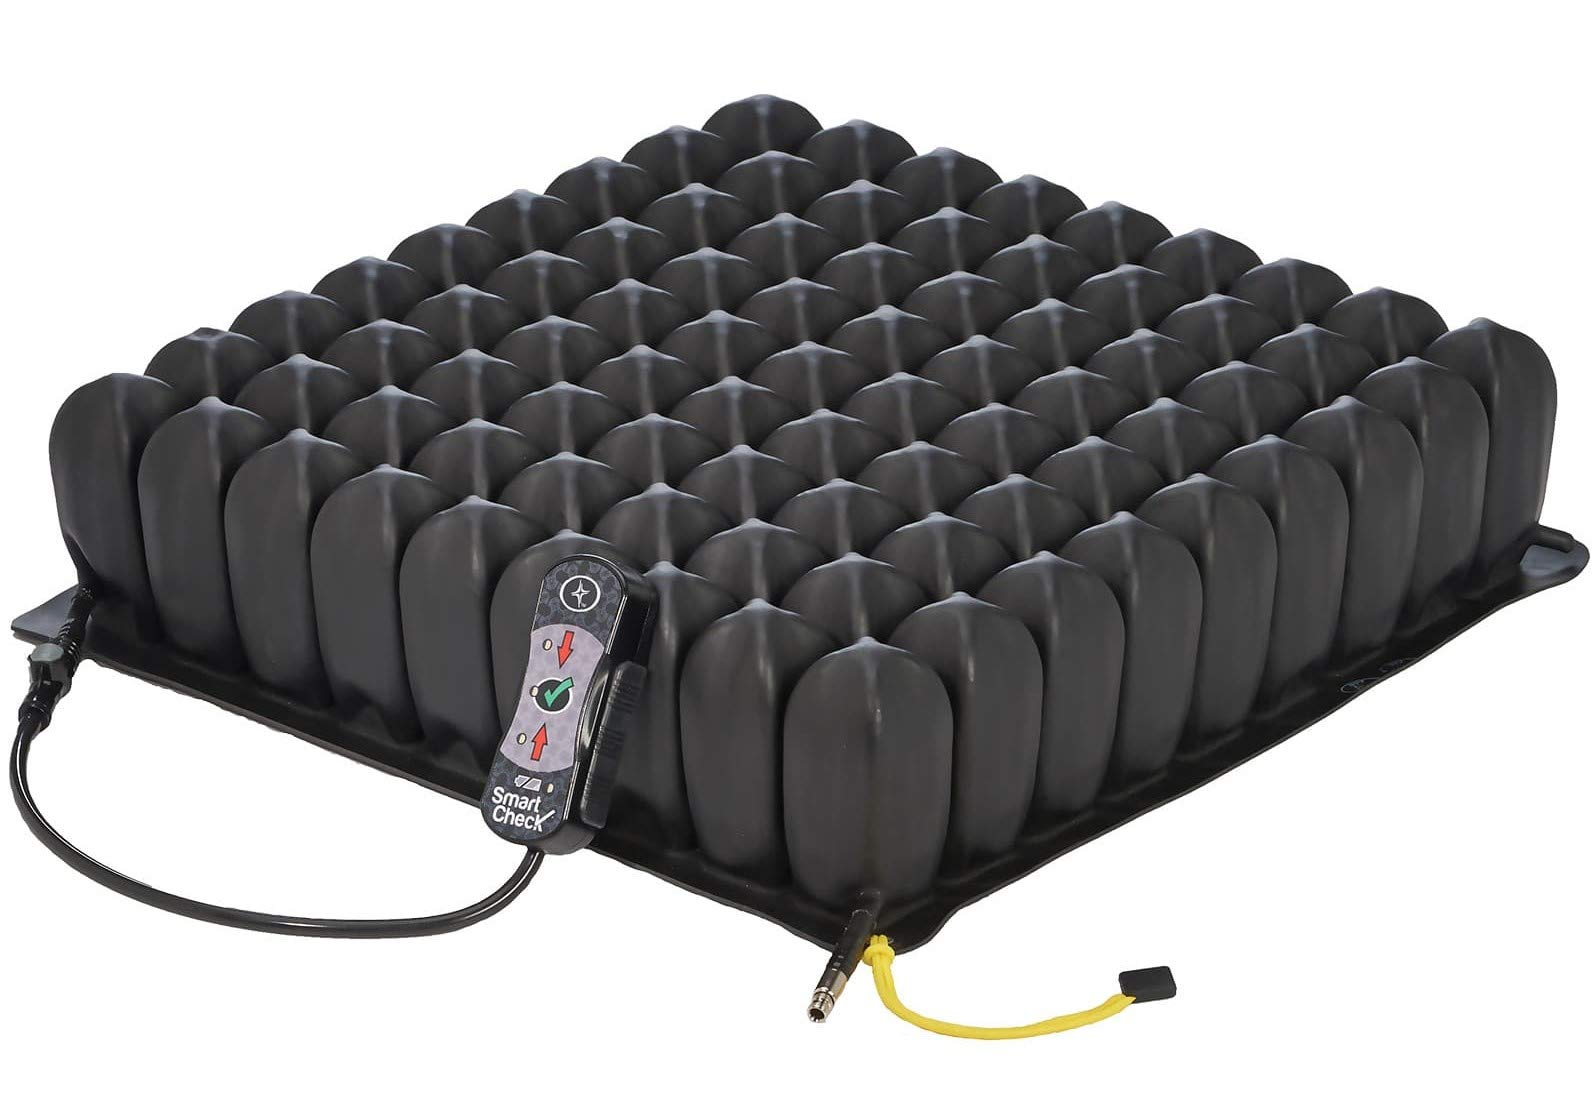 Roho High Profile Wheelchair Cushion with Smart Check Pressure Sensor Remote, 18 x 16 - Adjustable Pressure Relief Air Seat - Conforms to Body Shape and Weight - with Pump, Cover, Repair Kit by Roho